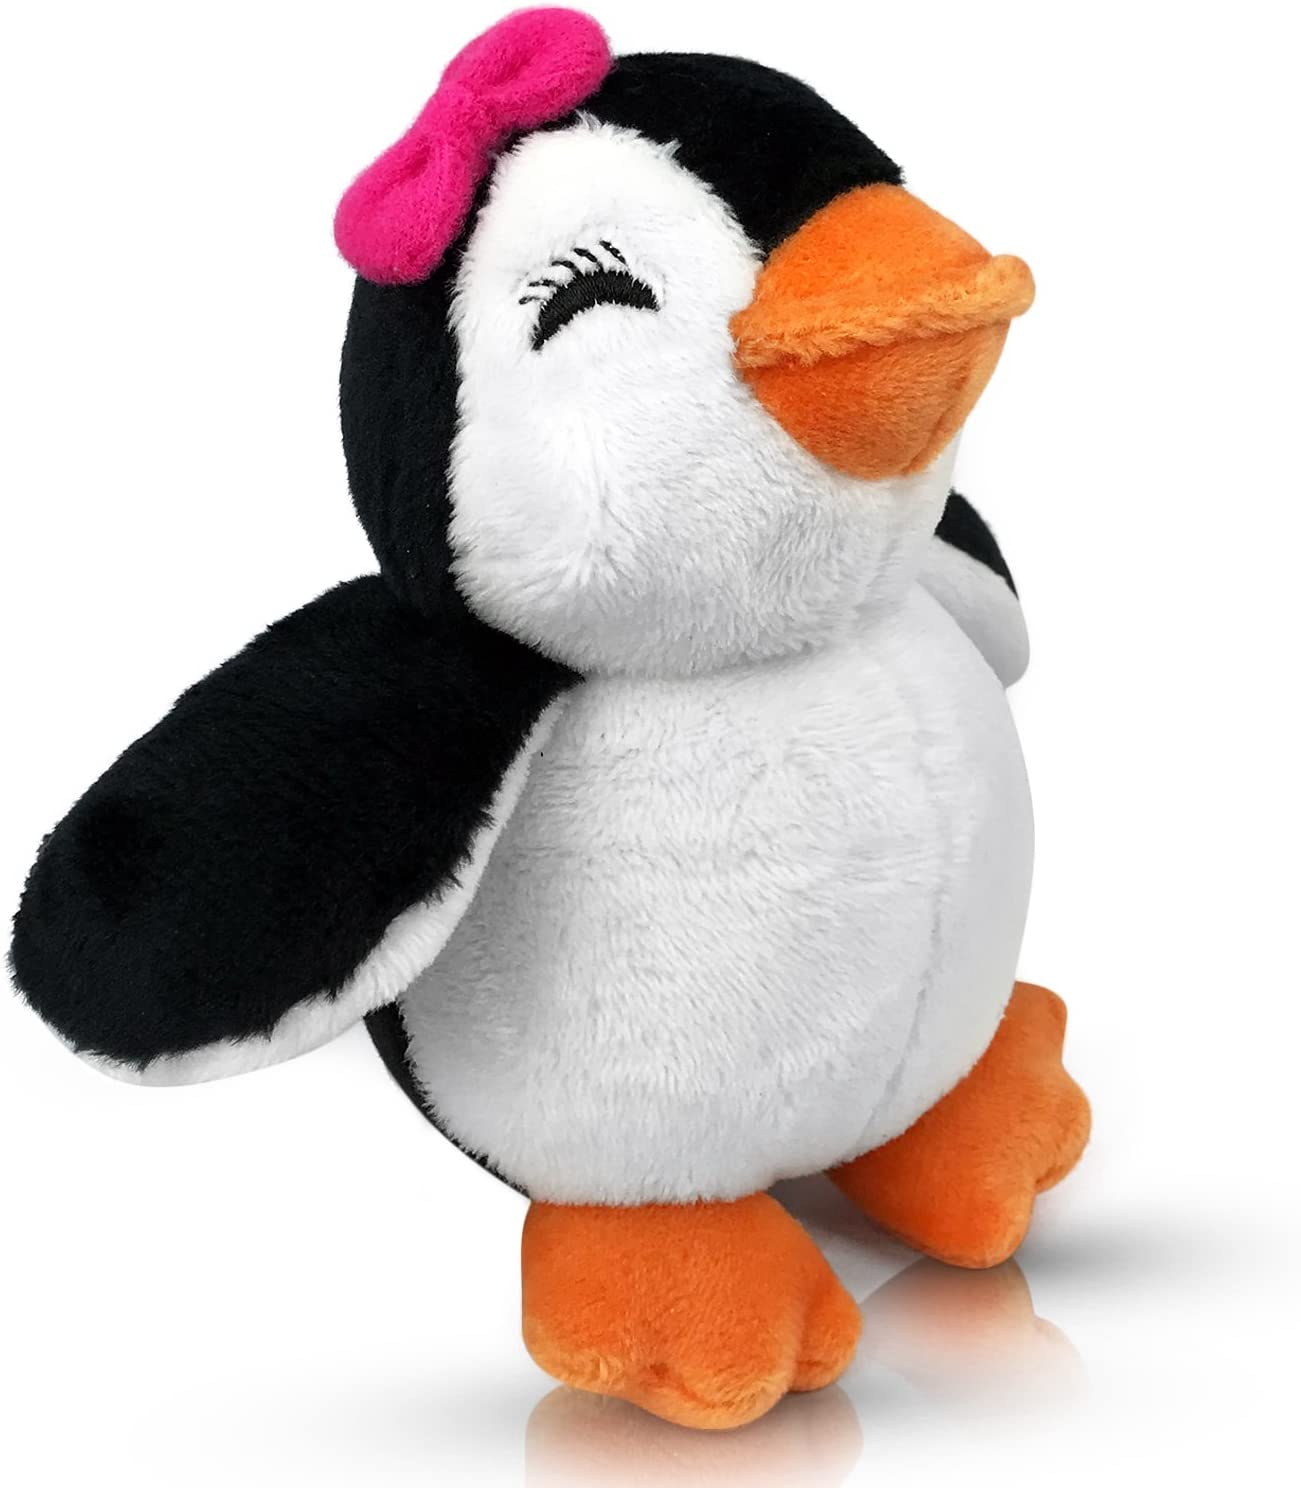 Top 15 Best Cute Stuffed Animals (2020 Reviews & Buying Guide) 1